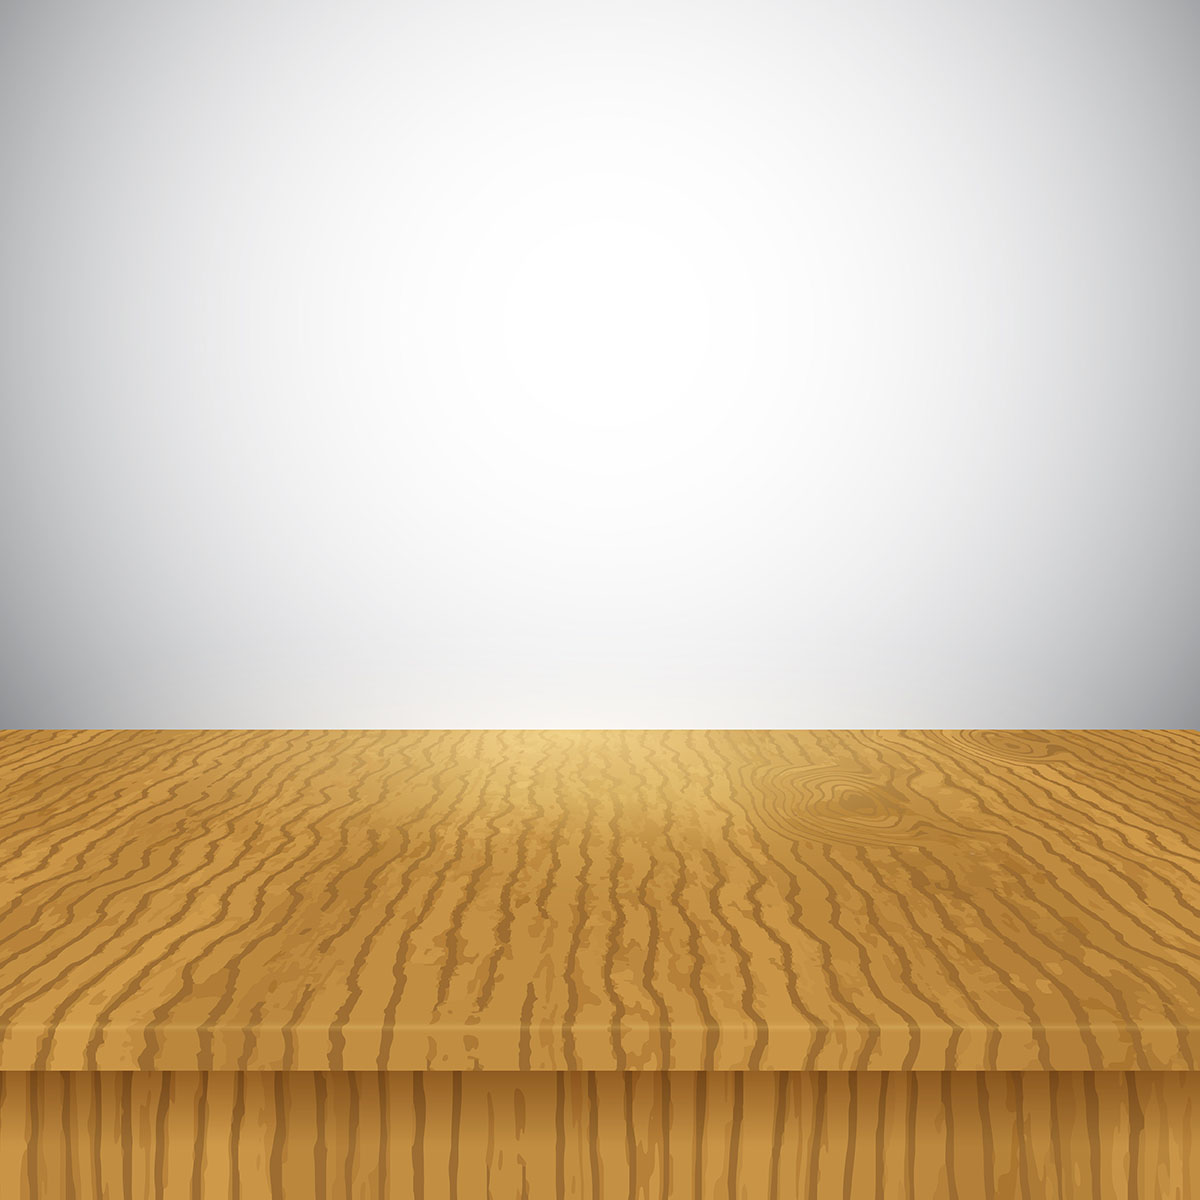 Wooden Table Display Background Download Free Vectors